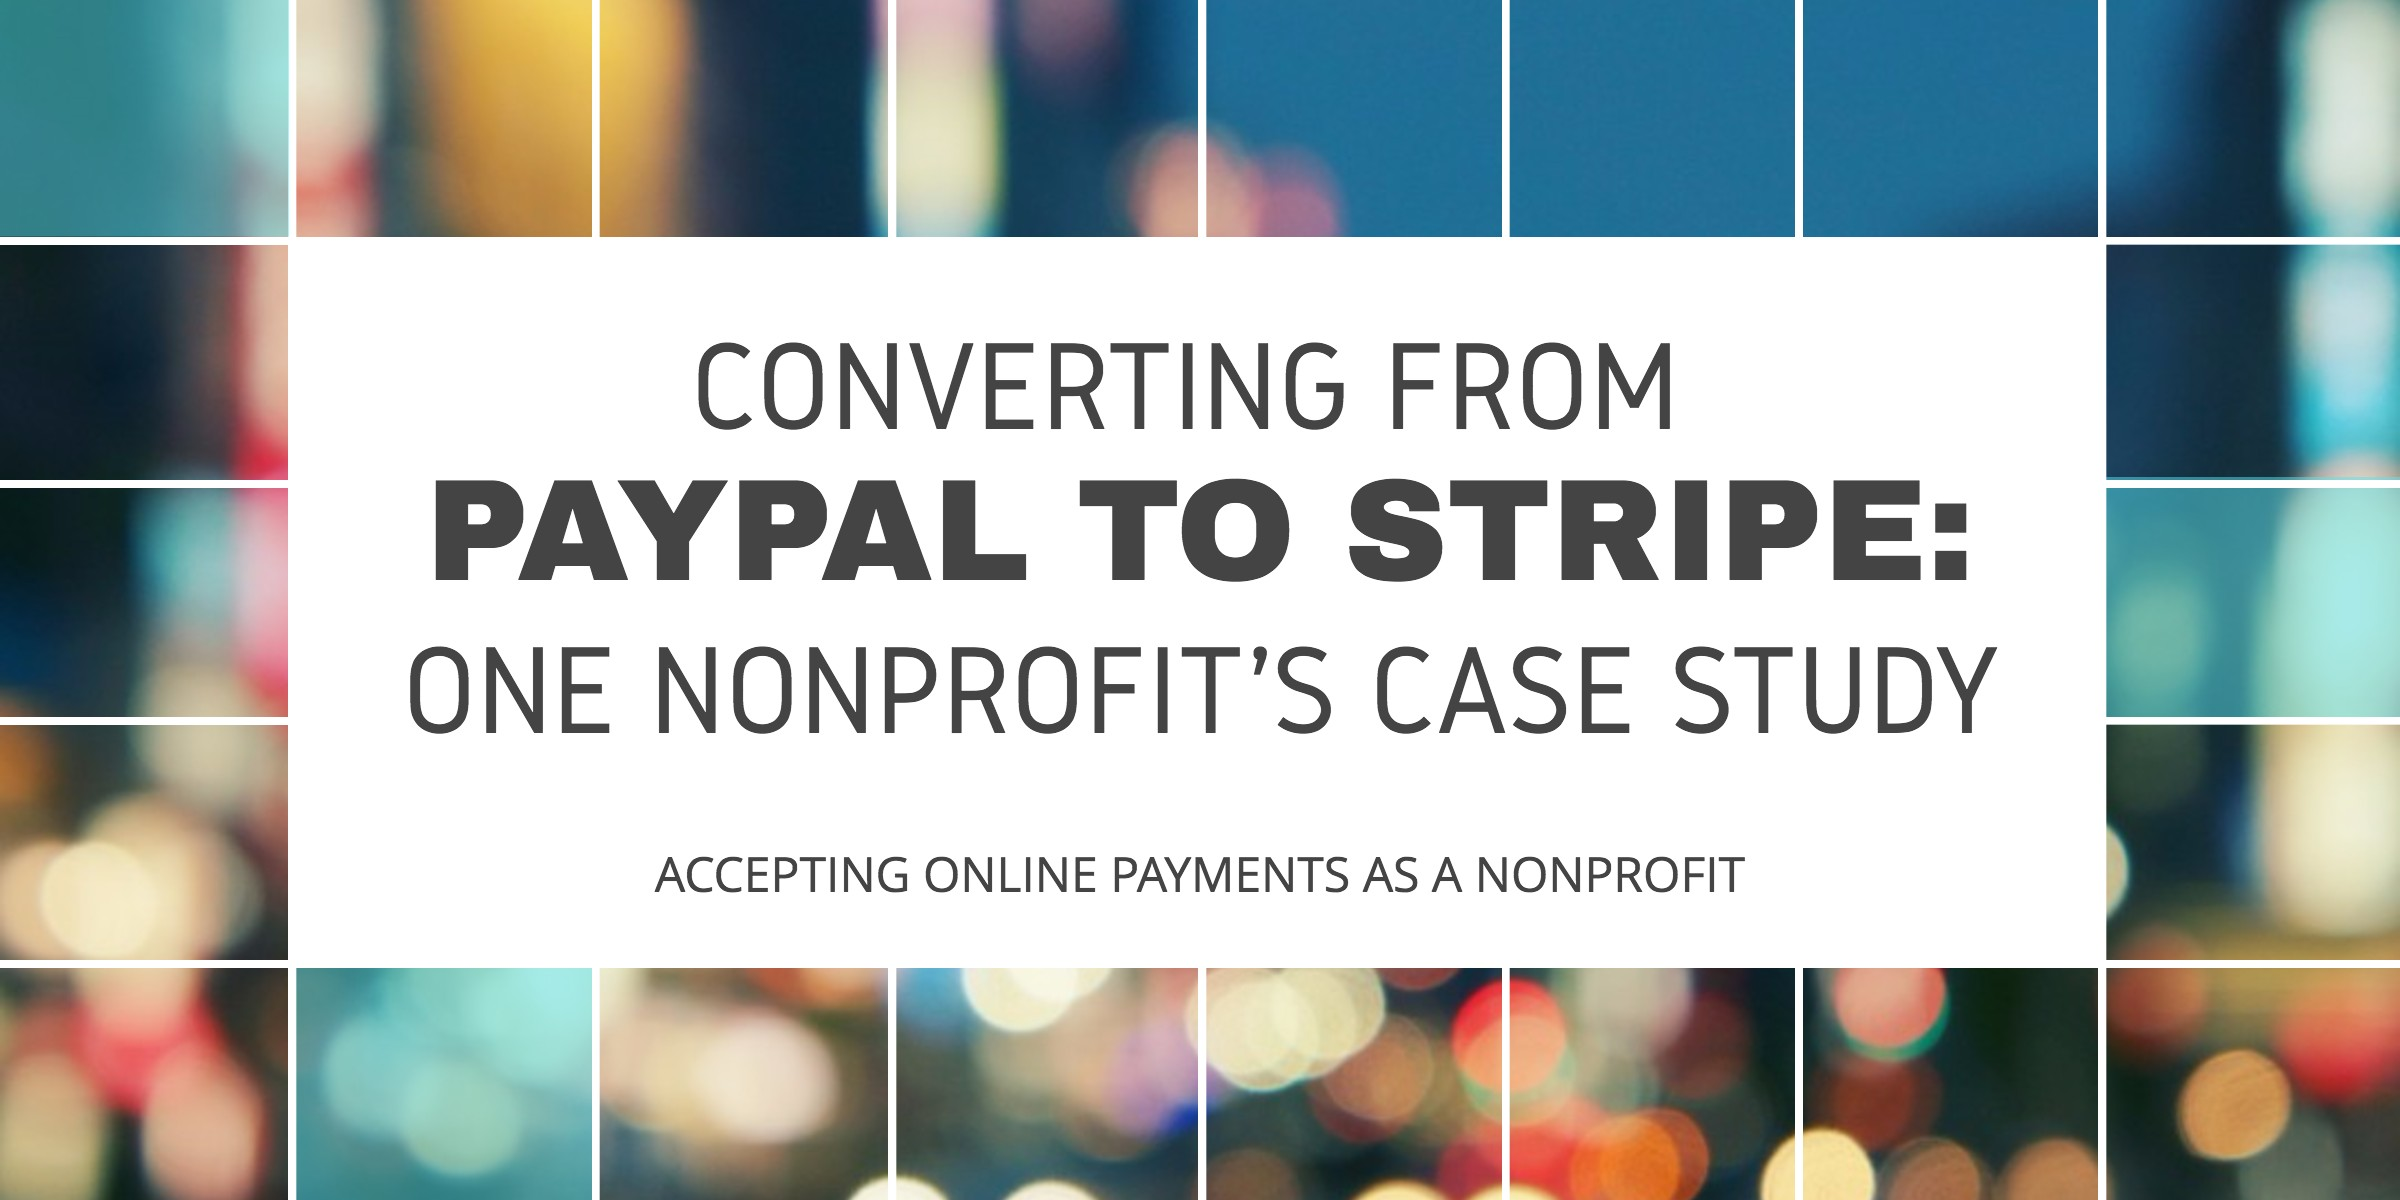 Convert from PayPal to Stripe: Online Payments as a